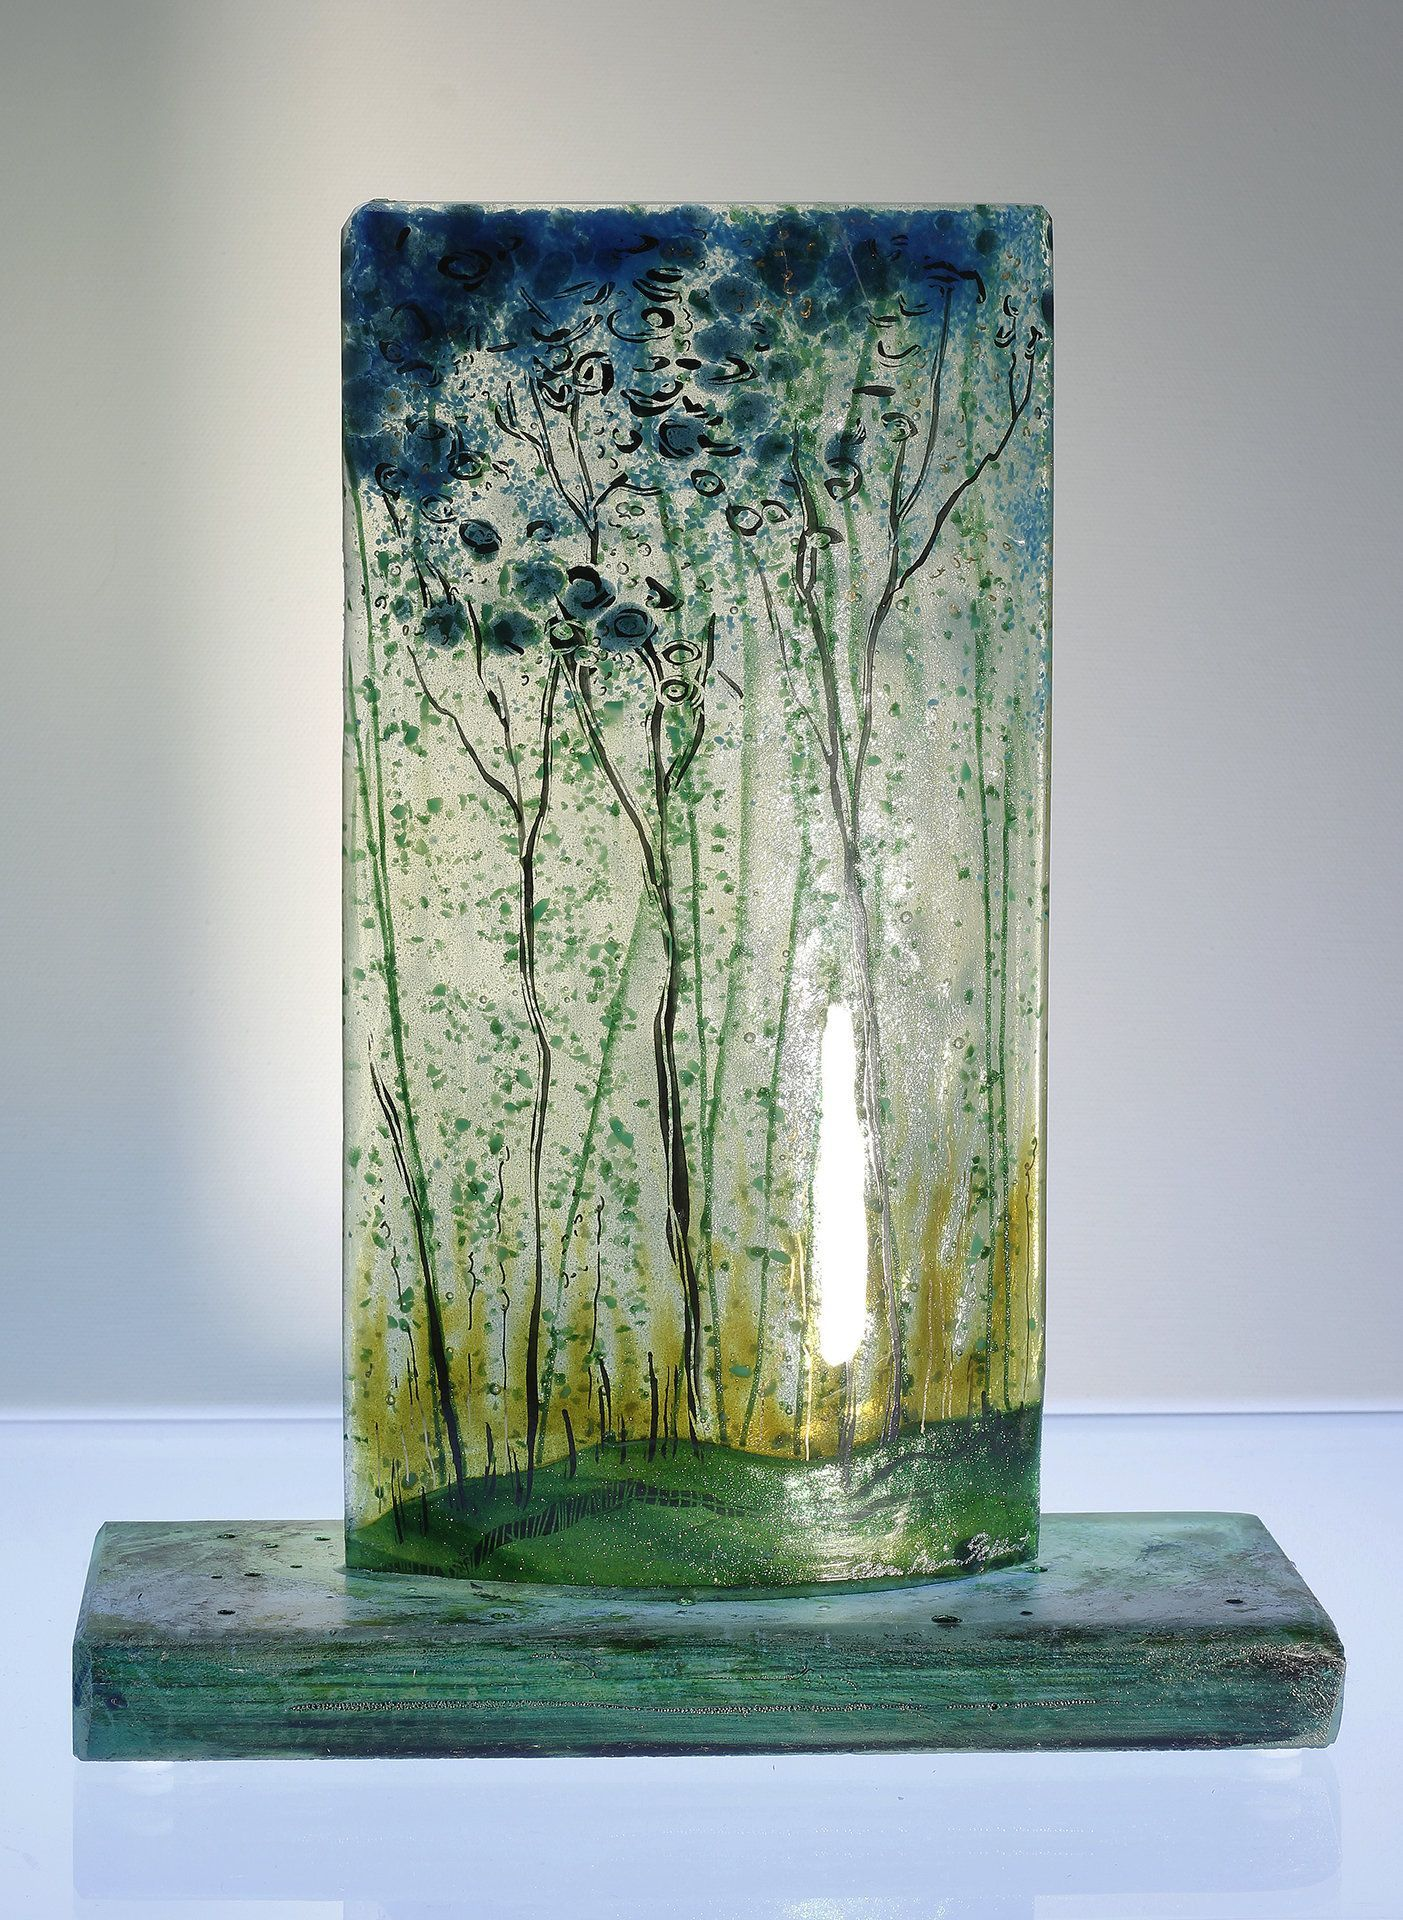 Alice Benvie Gebhart Glass Artist   Artful Home Mary Lightner mzlight1 Glass art with dimension Seasonal Pleasure by Alice Benvie Gebhart. This sculpture is kiln-formed glass fabricated on a thick etched and patinaed glass base. Iridescent glass re# Alice #artful #Artist #Benvie #Epoxy Recin Crafts #epoxy recin crafts sea glass #Gebhart